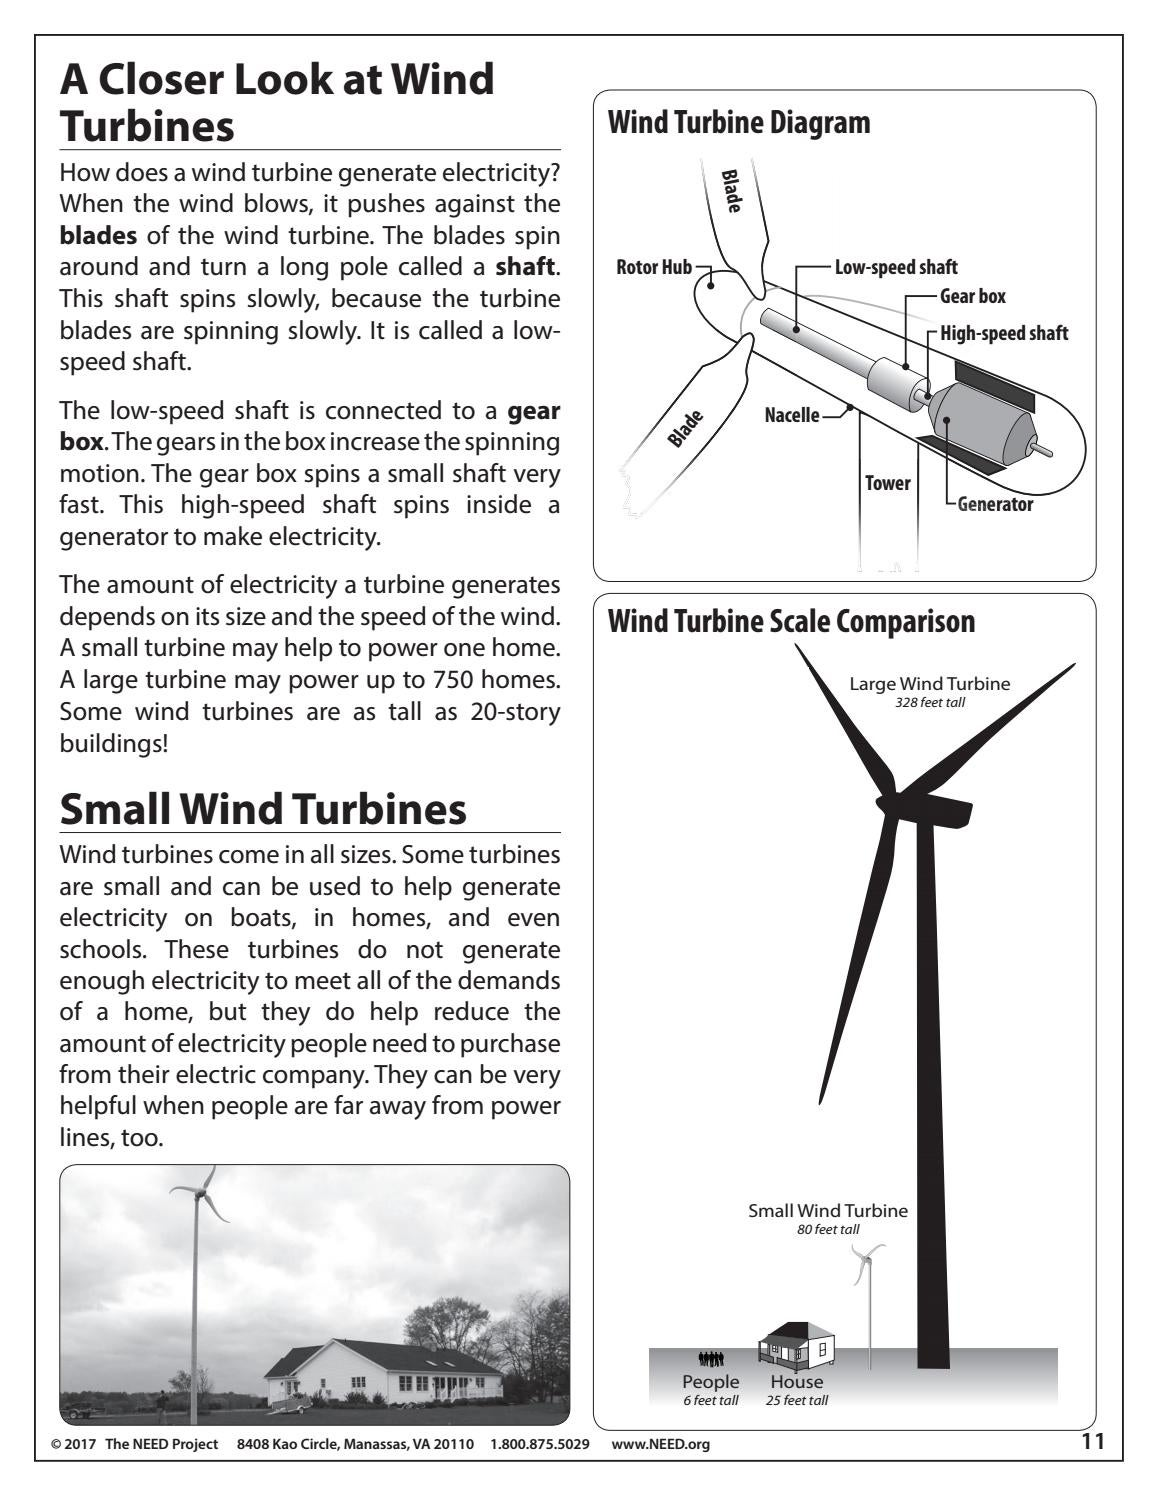 Wonders Of Wind Student Guide By Need Project Issuu Turbine Diagrams